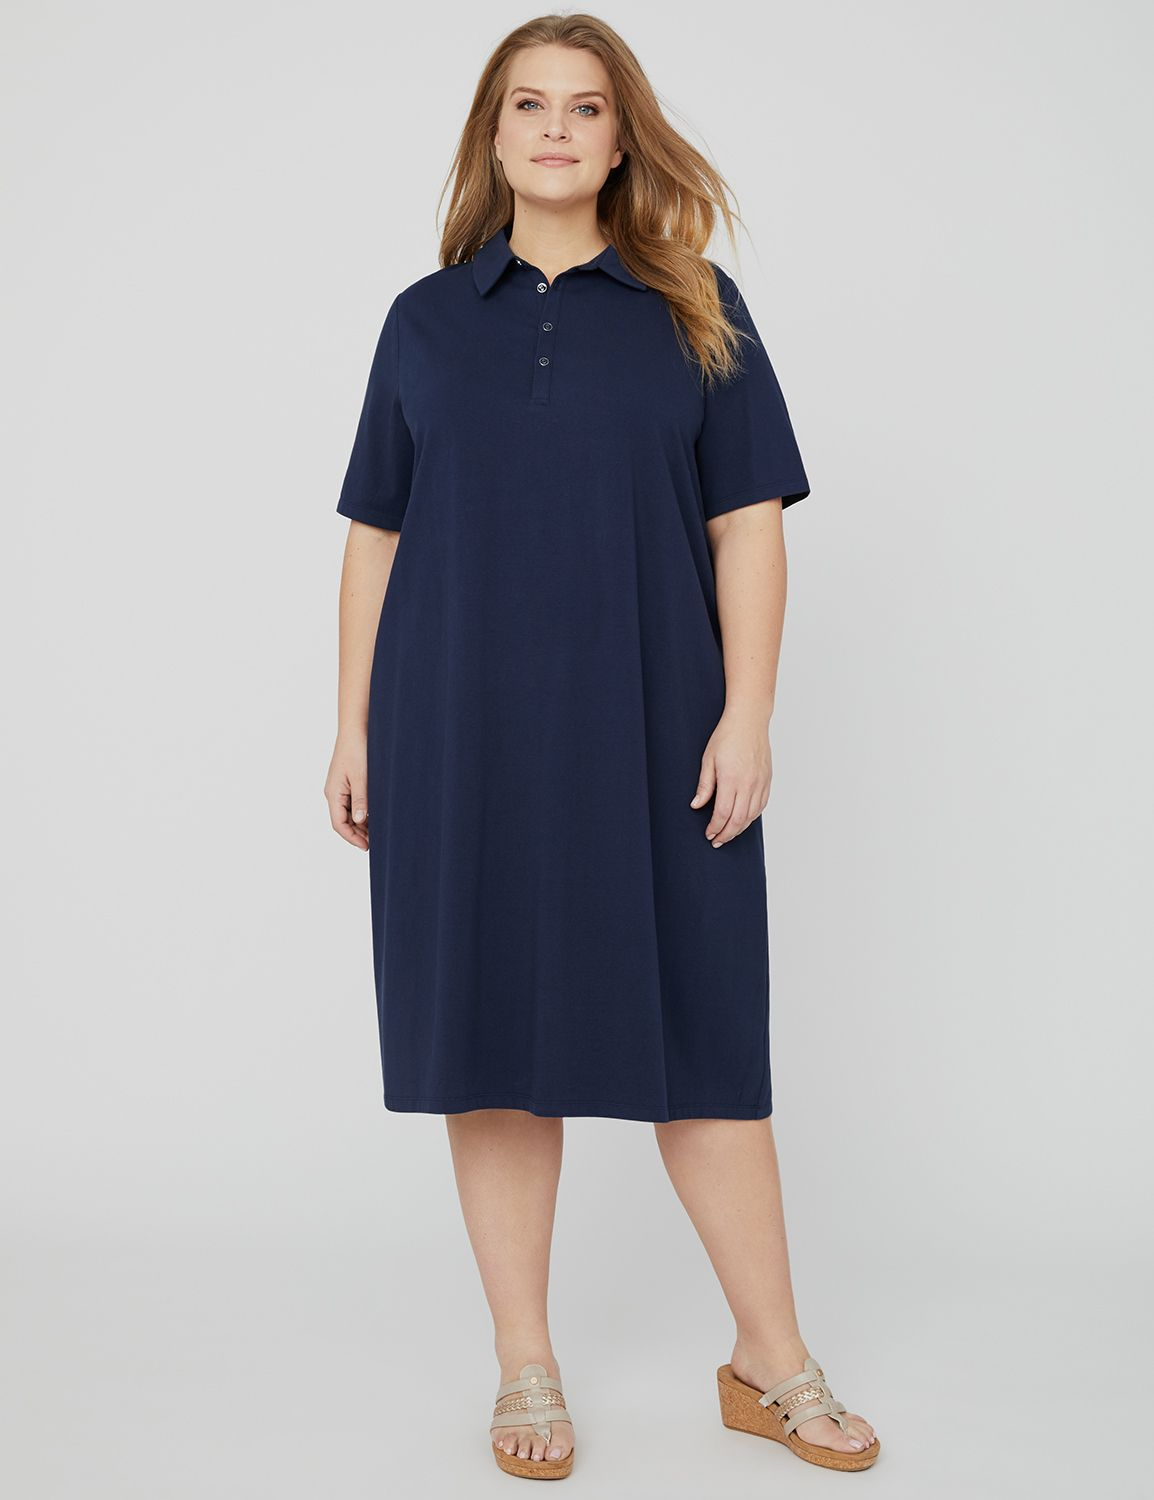 Suprema Polo Dress 1090899 Suprema Polo Dress MP-300105860